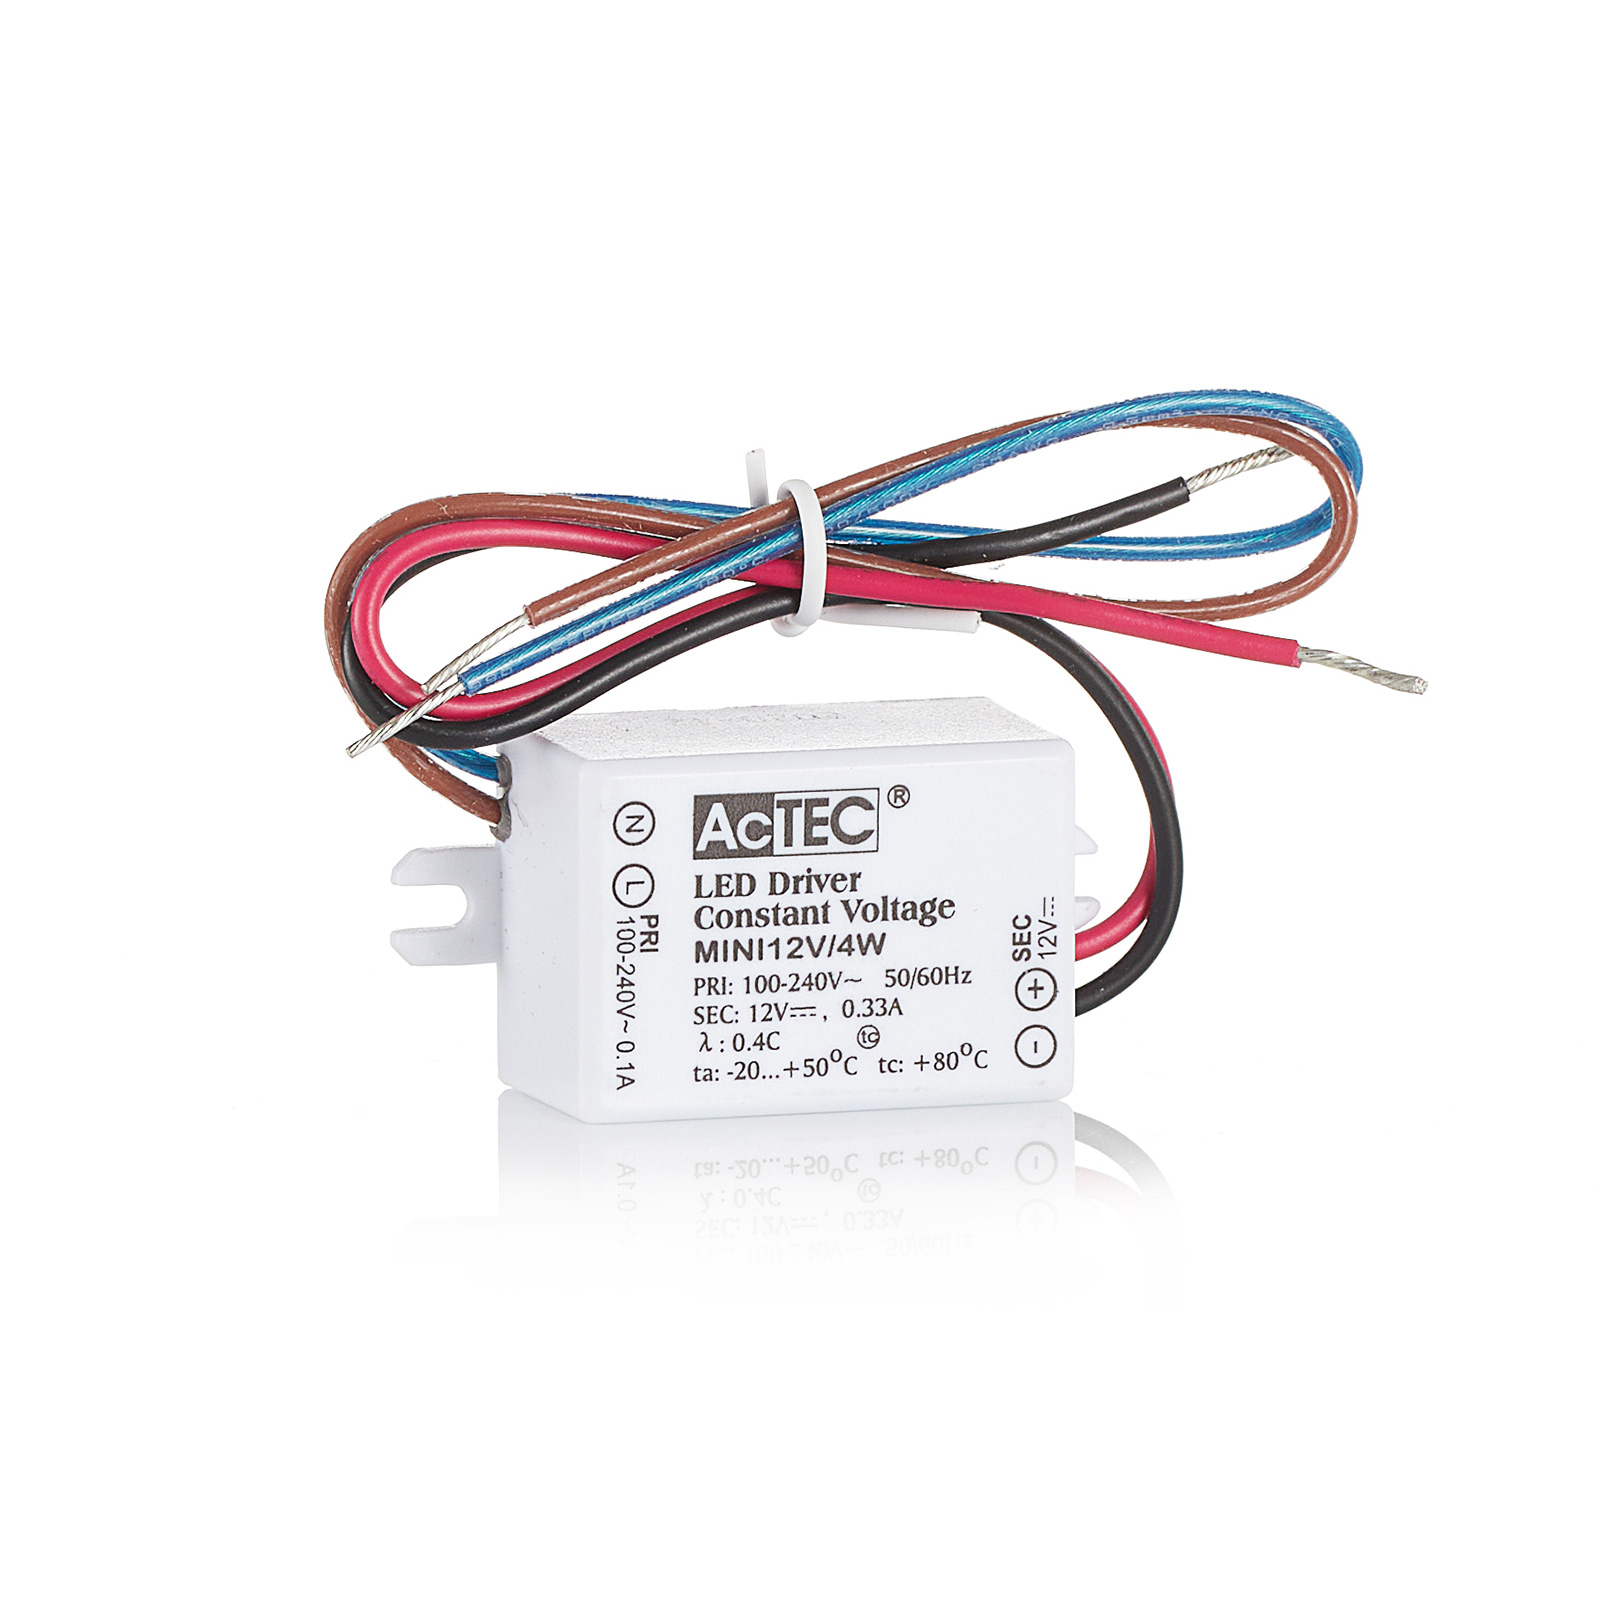 AcTEC Mini sterownik LED CV 12V, 4W, IP65